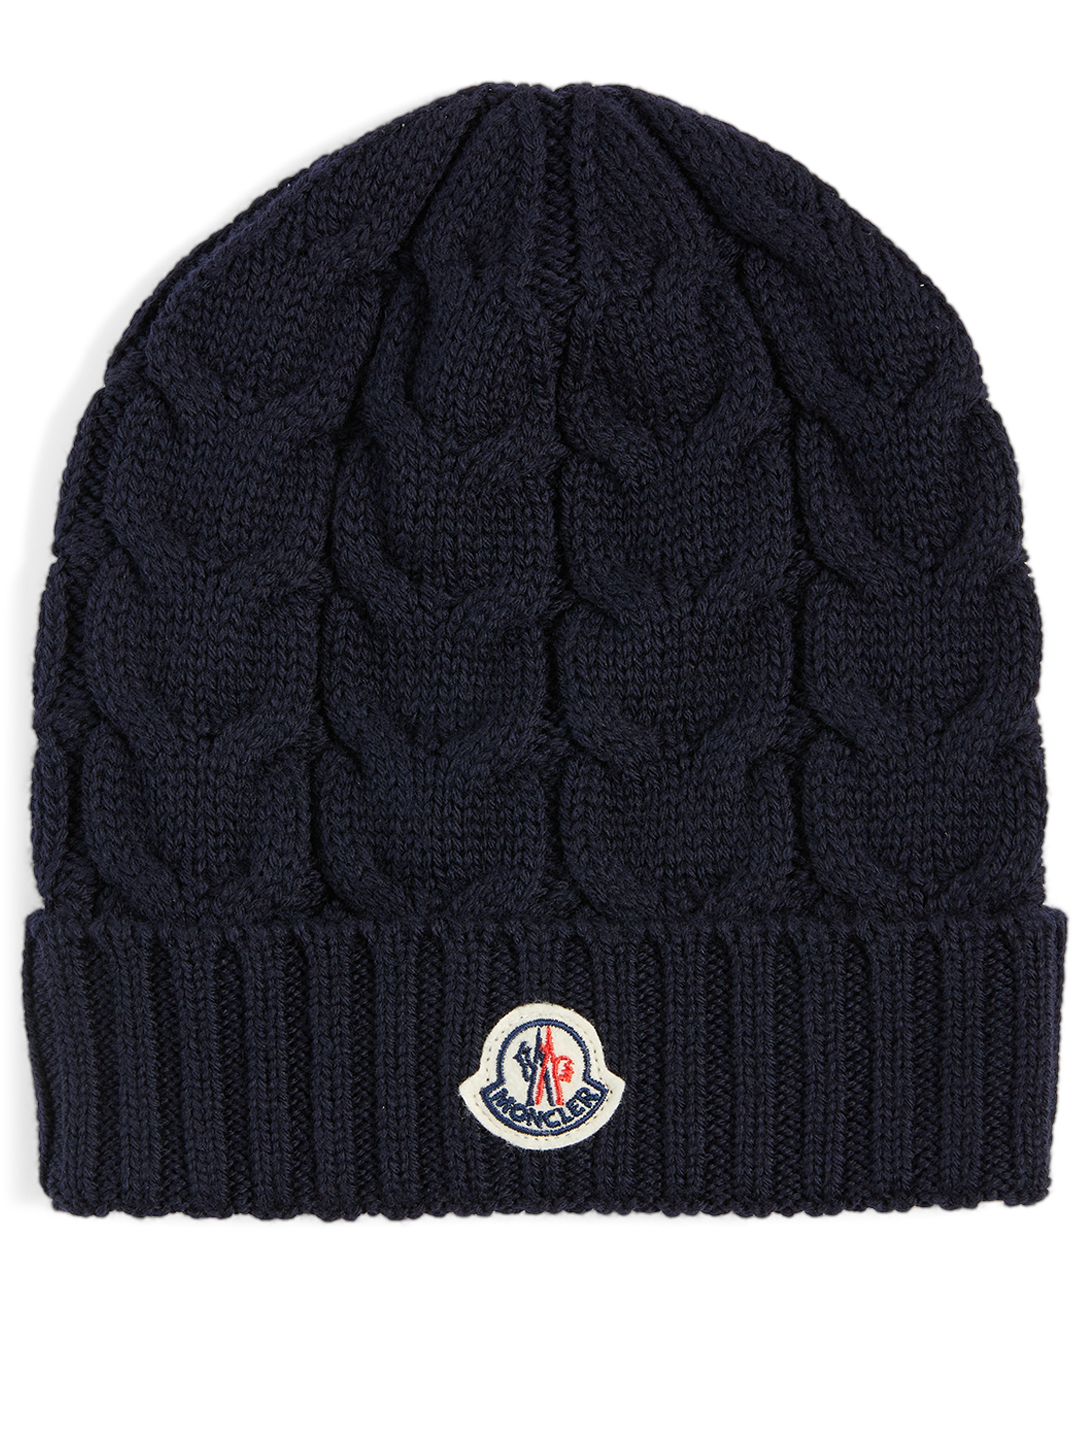 MONCLER ENFANT Harmony Wool Toque Kids Blue